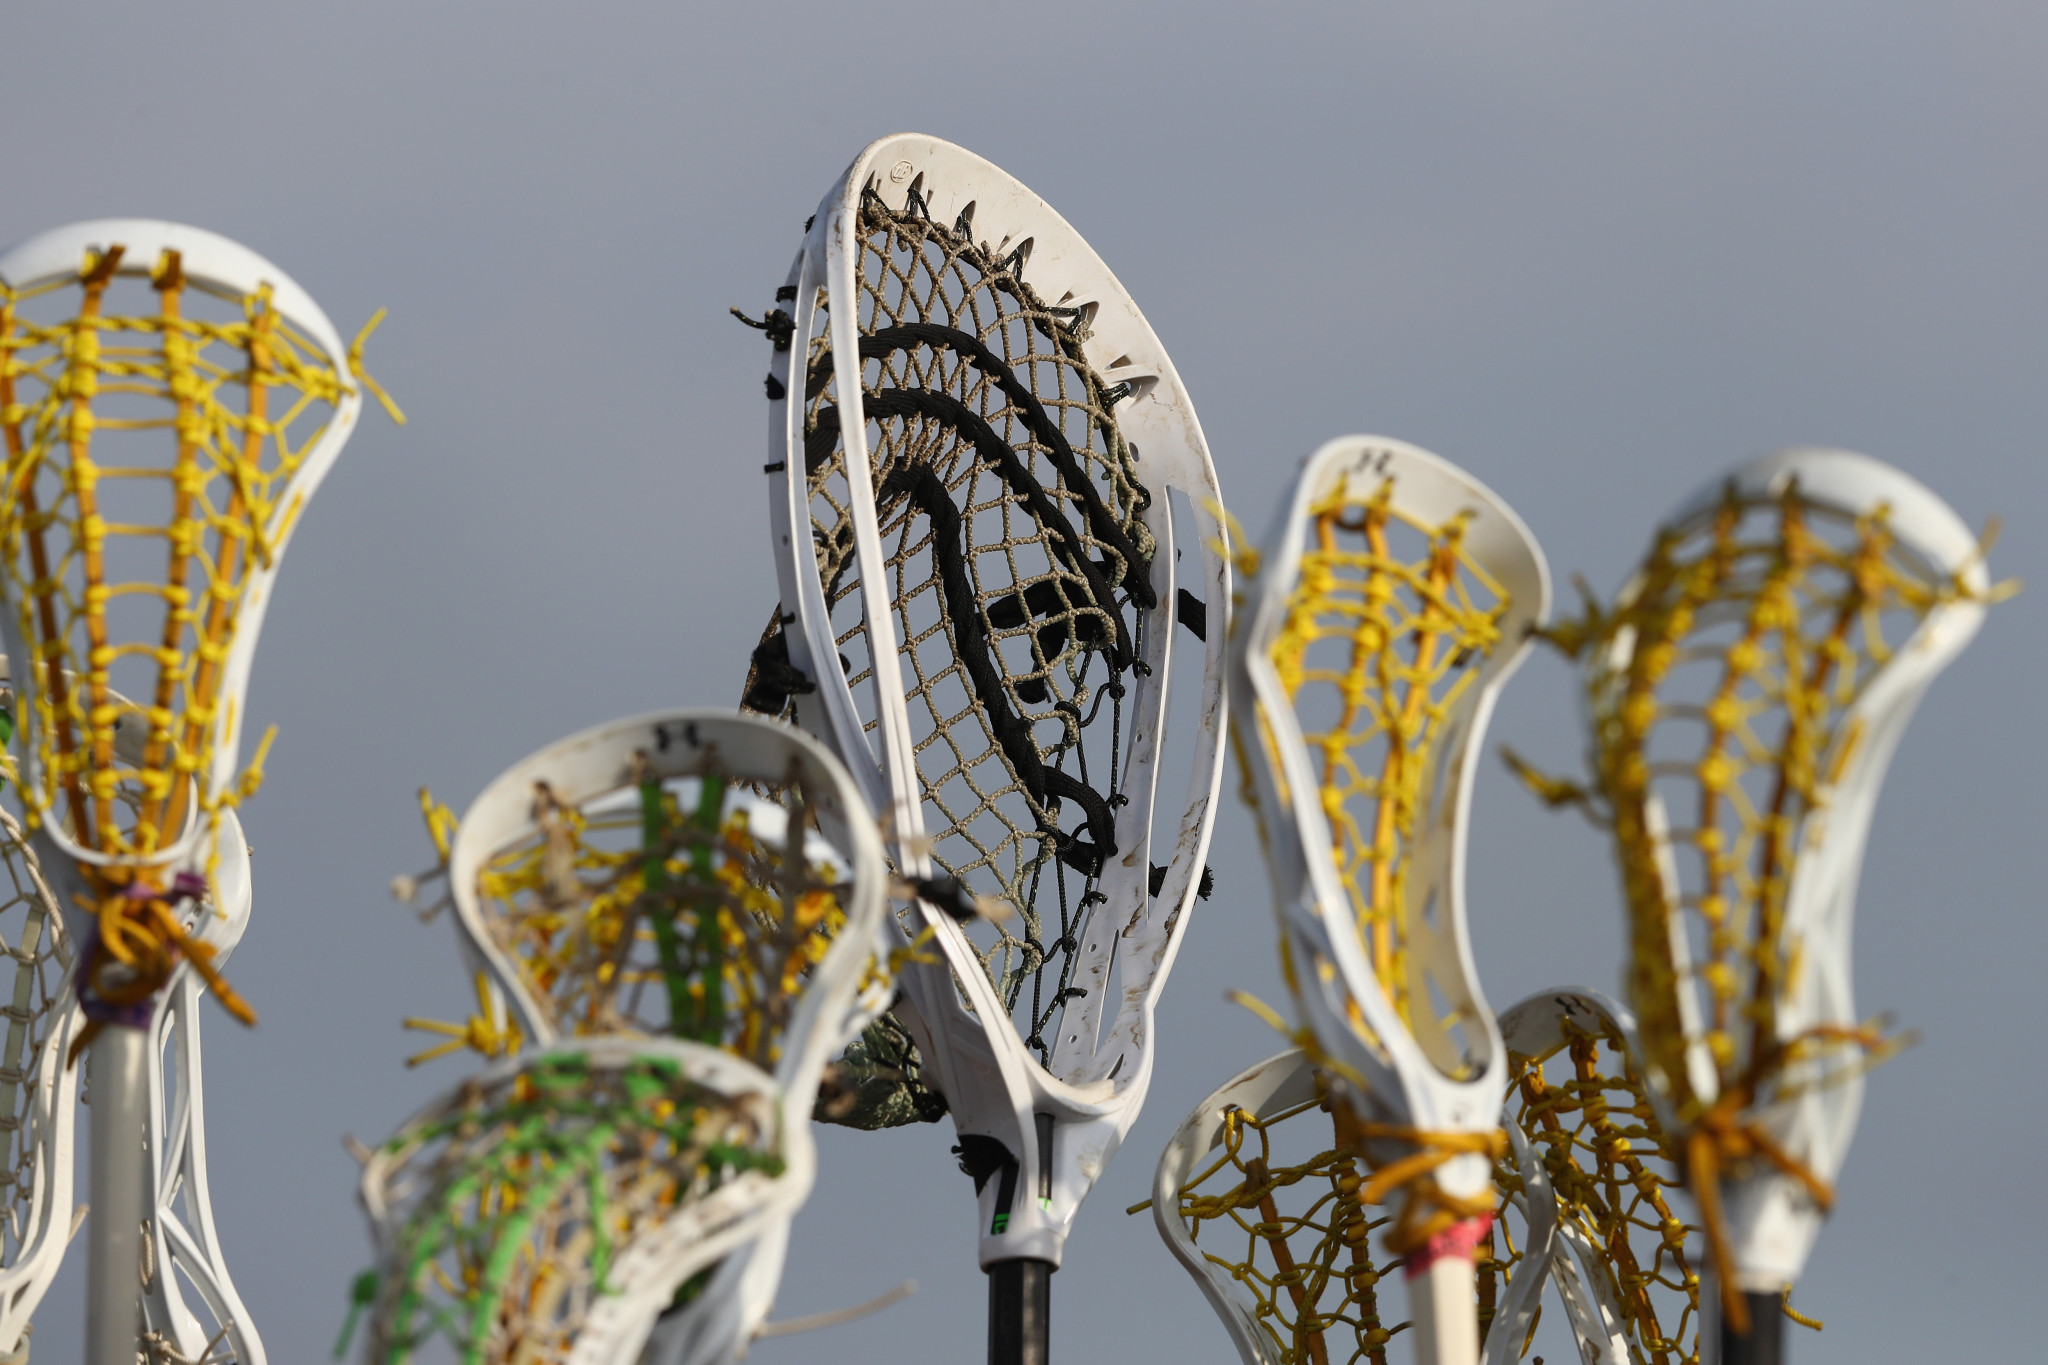 Record 23 lacrosse teams to play at Men's Under-21 World Championship